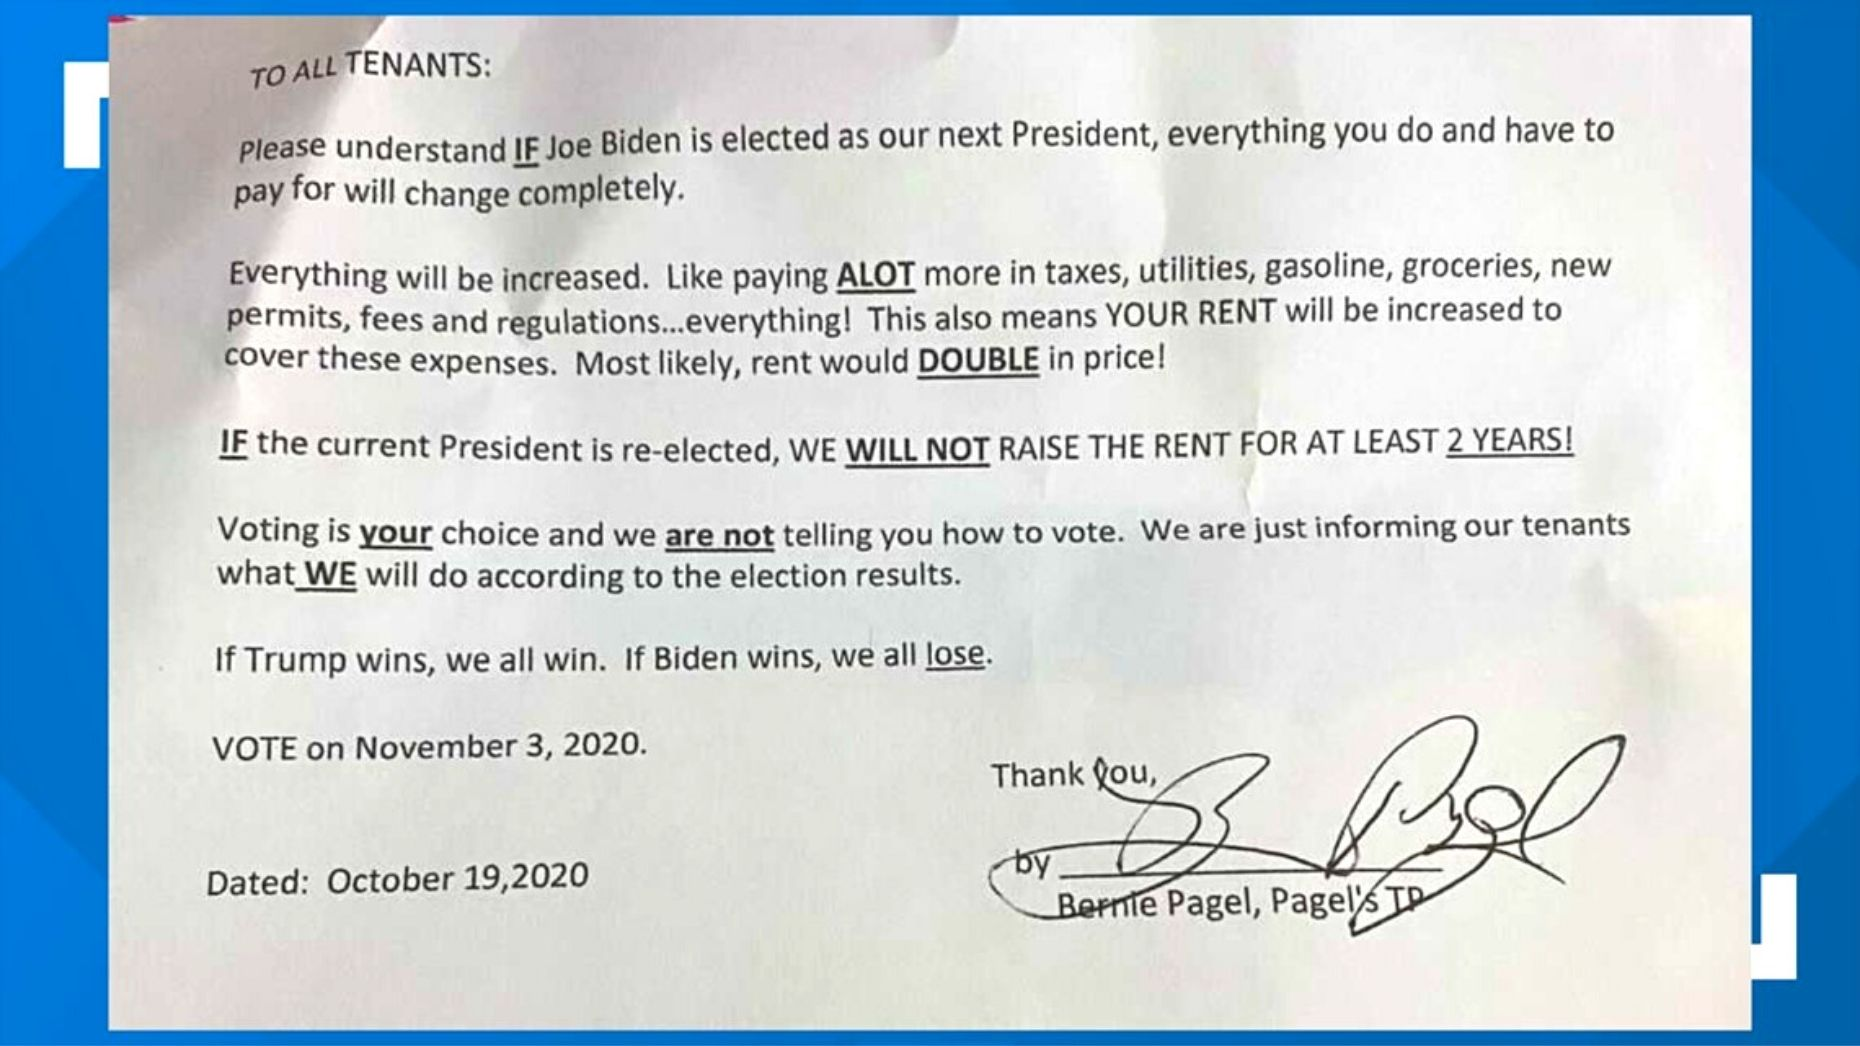 Landlords threaten to raise tenants' rent if Biden wins in November